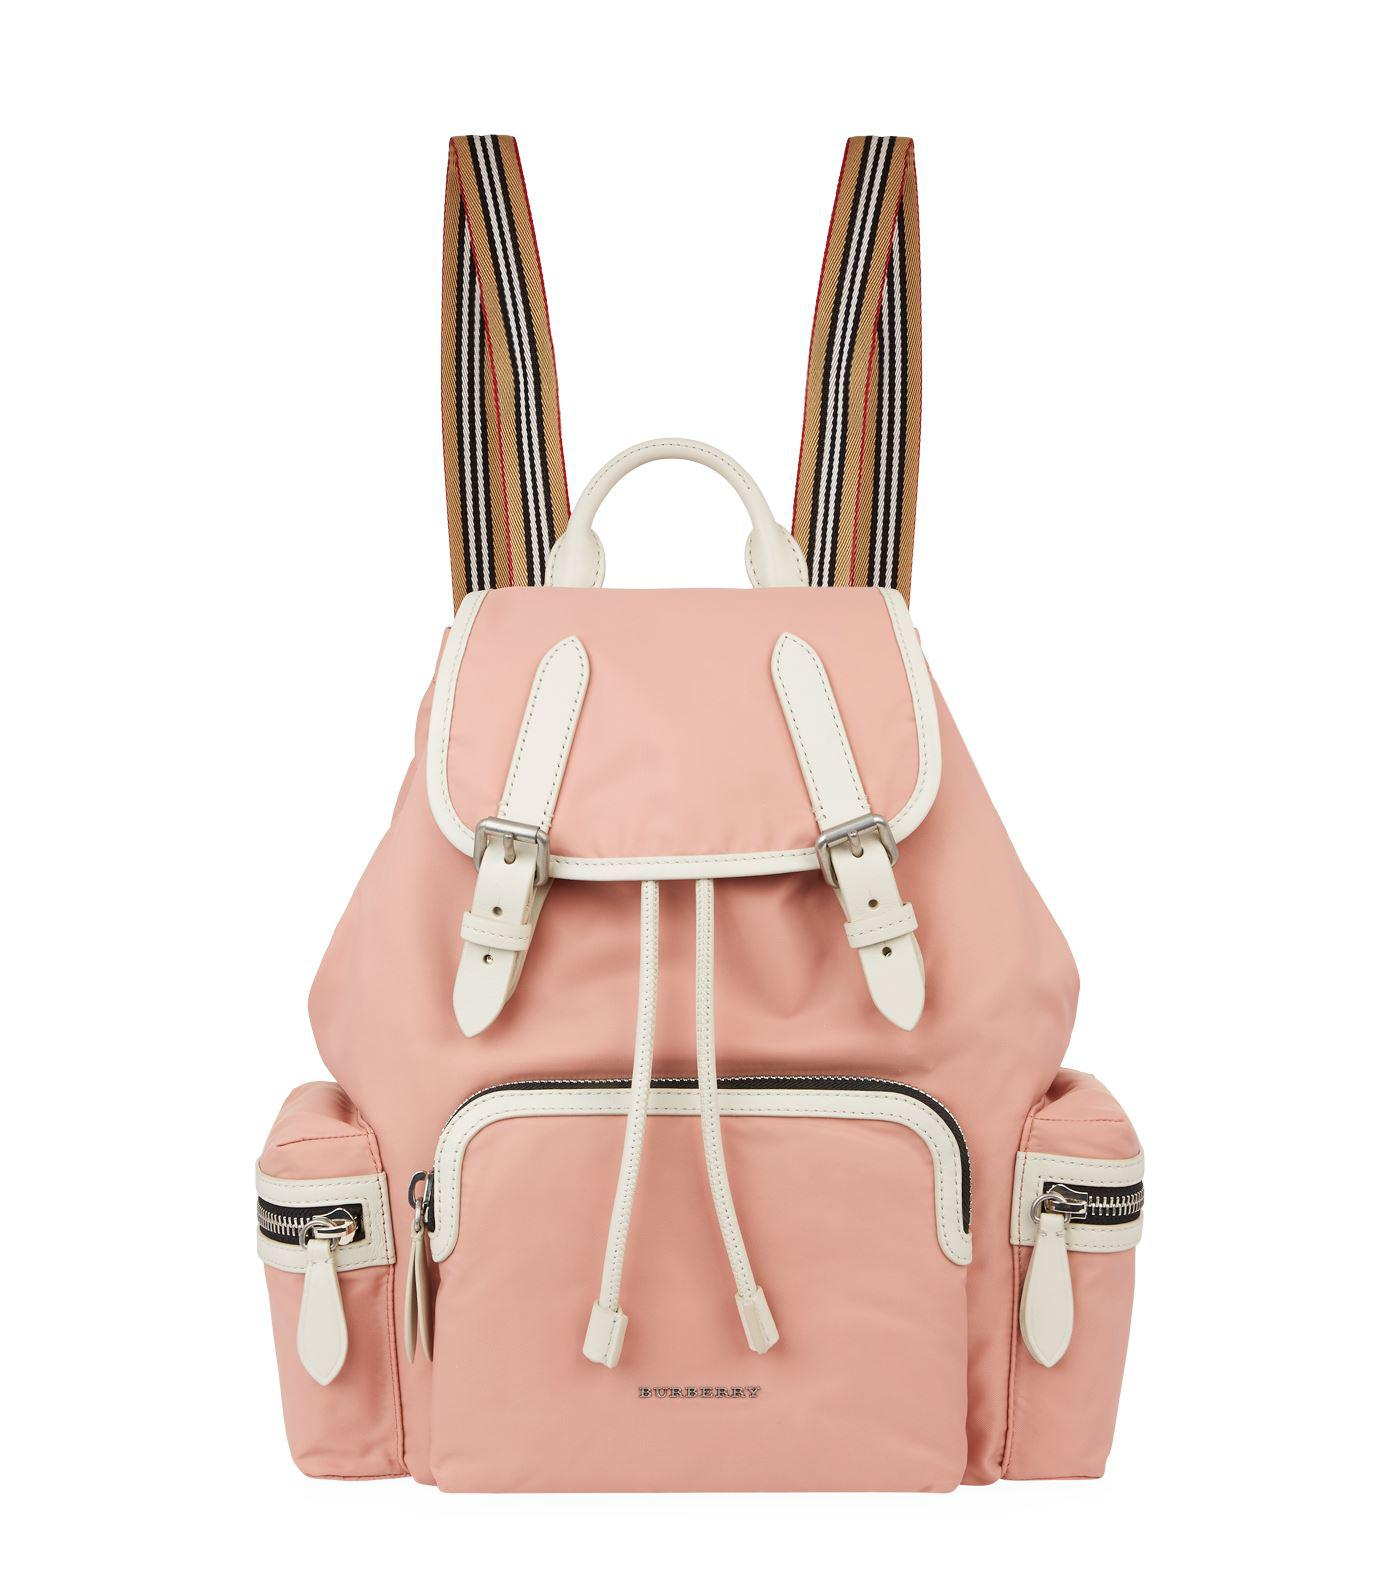 8dc58e9a88ff Long-Touch to Zoom. Burberry - Pink Medium Contrast Buckled Rucksack -  Lyst. View fullscreen